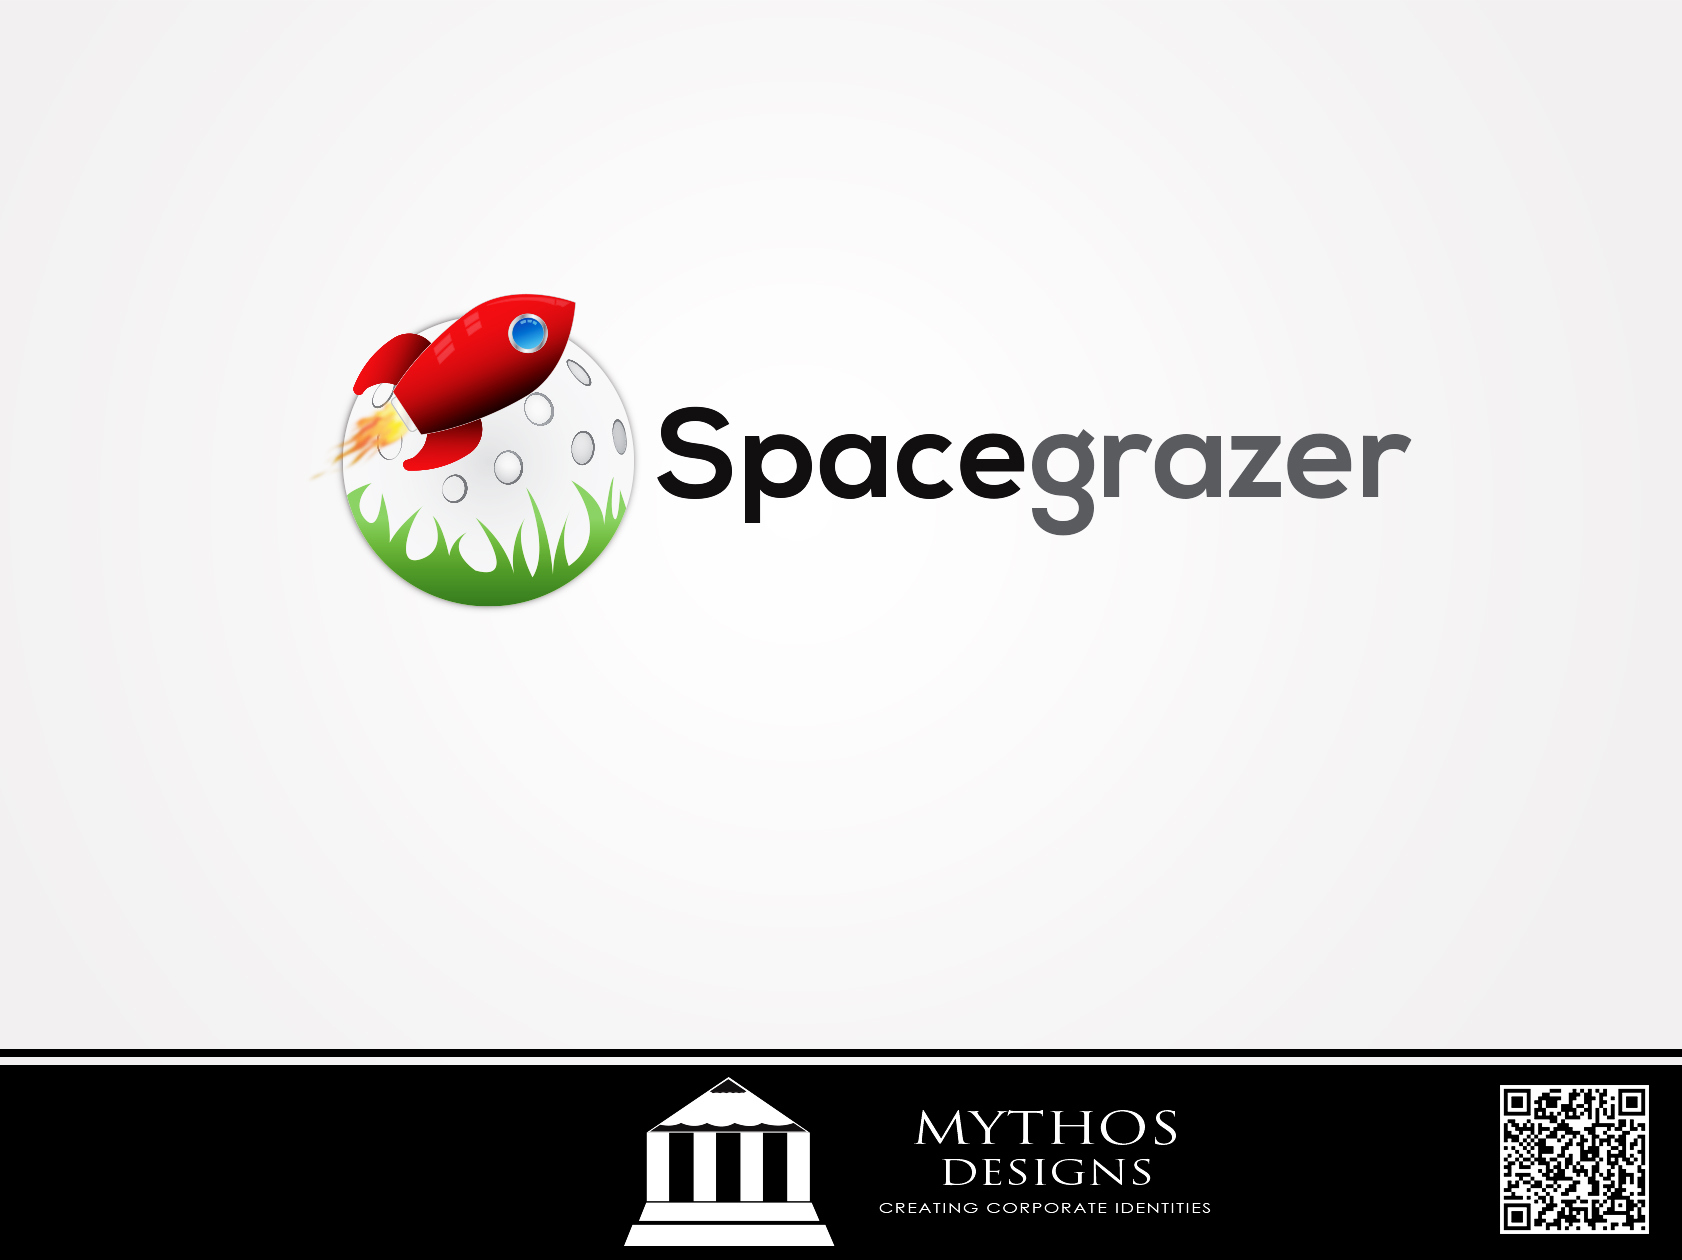 Logo Design by Mythos Designs - Entry No. 106 in the Logo Design Contest Fun Logo Design for Spacegrazer.